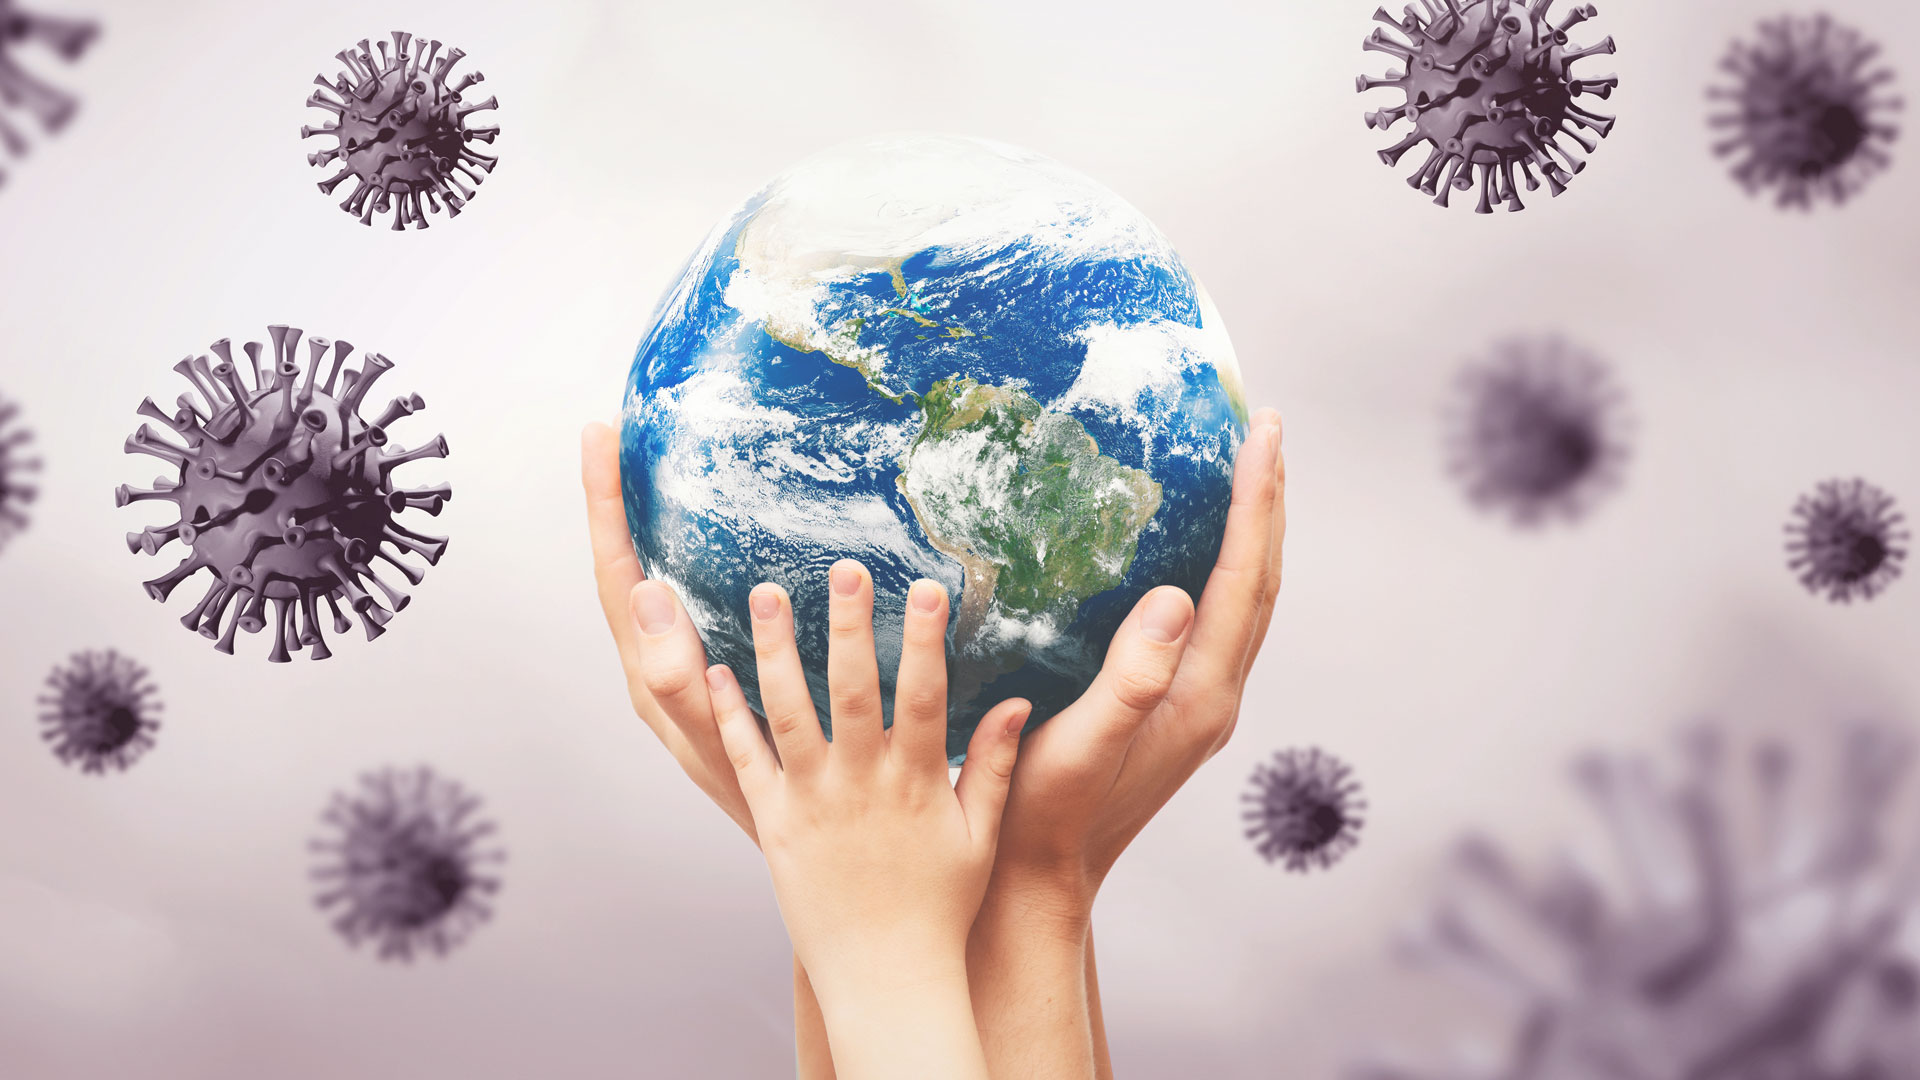 Viruses around the earth globe, world pandemic